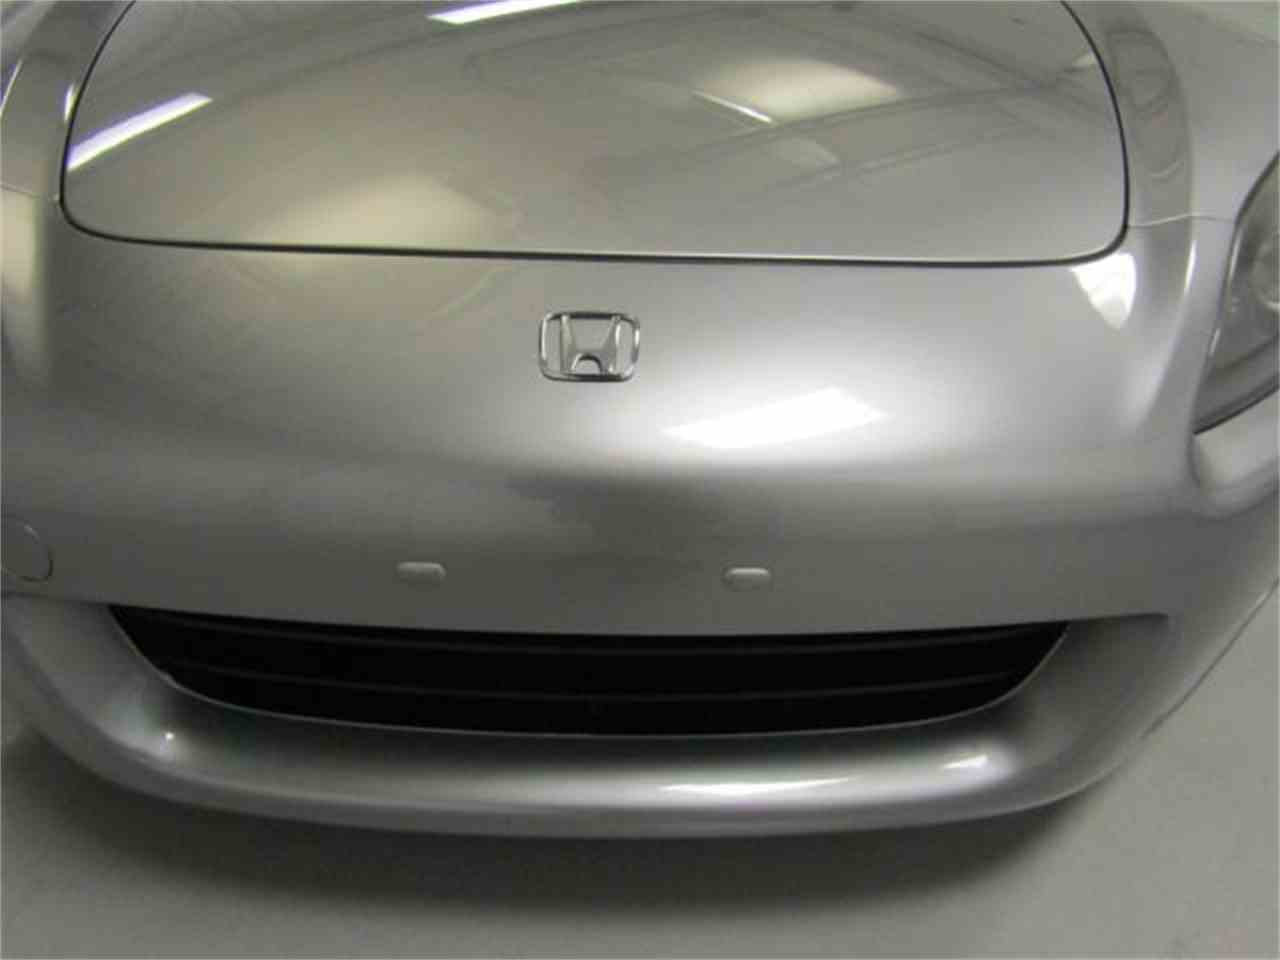 Large Picture of 2001 Honda S2000 located in Virginia Offered by Duncan Imports & Classic Cars - LI1R